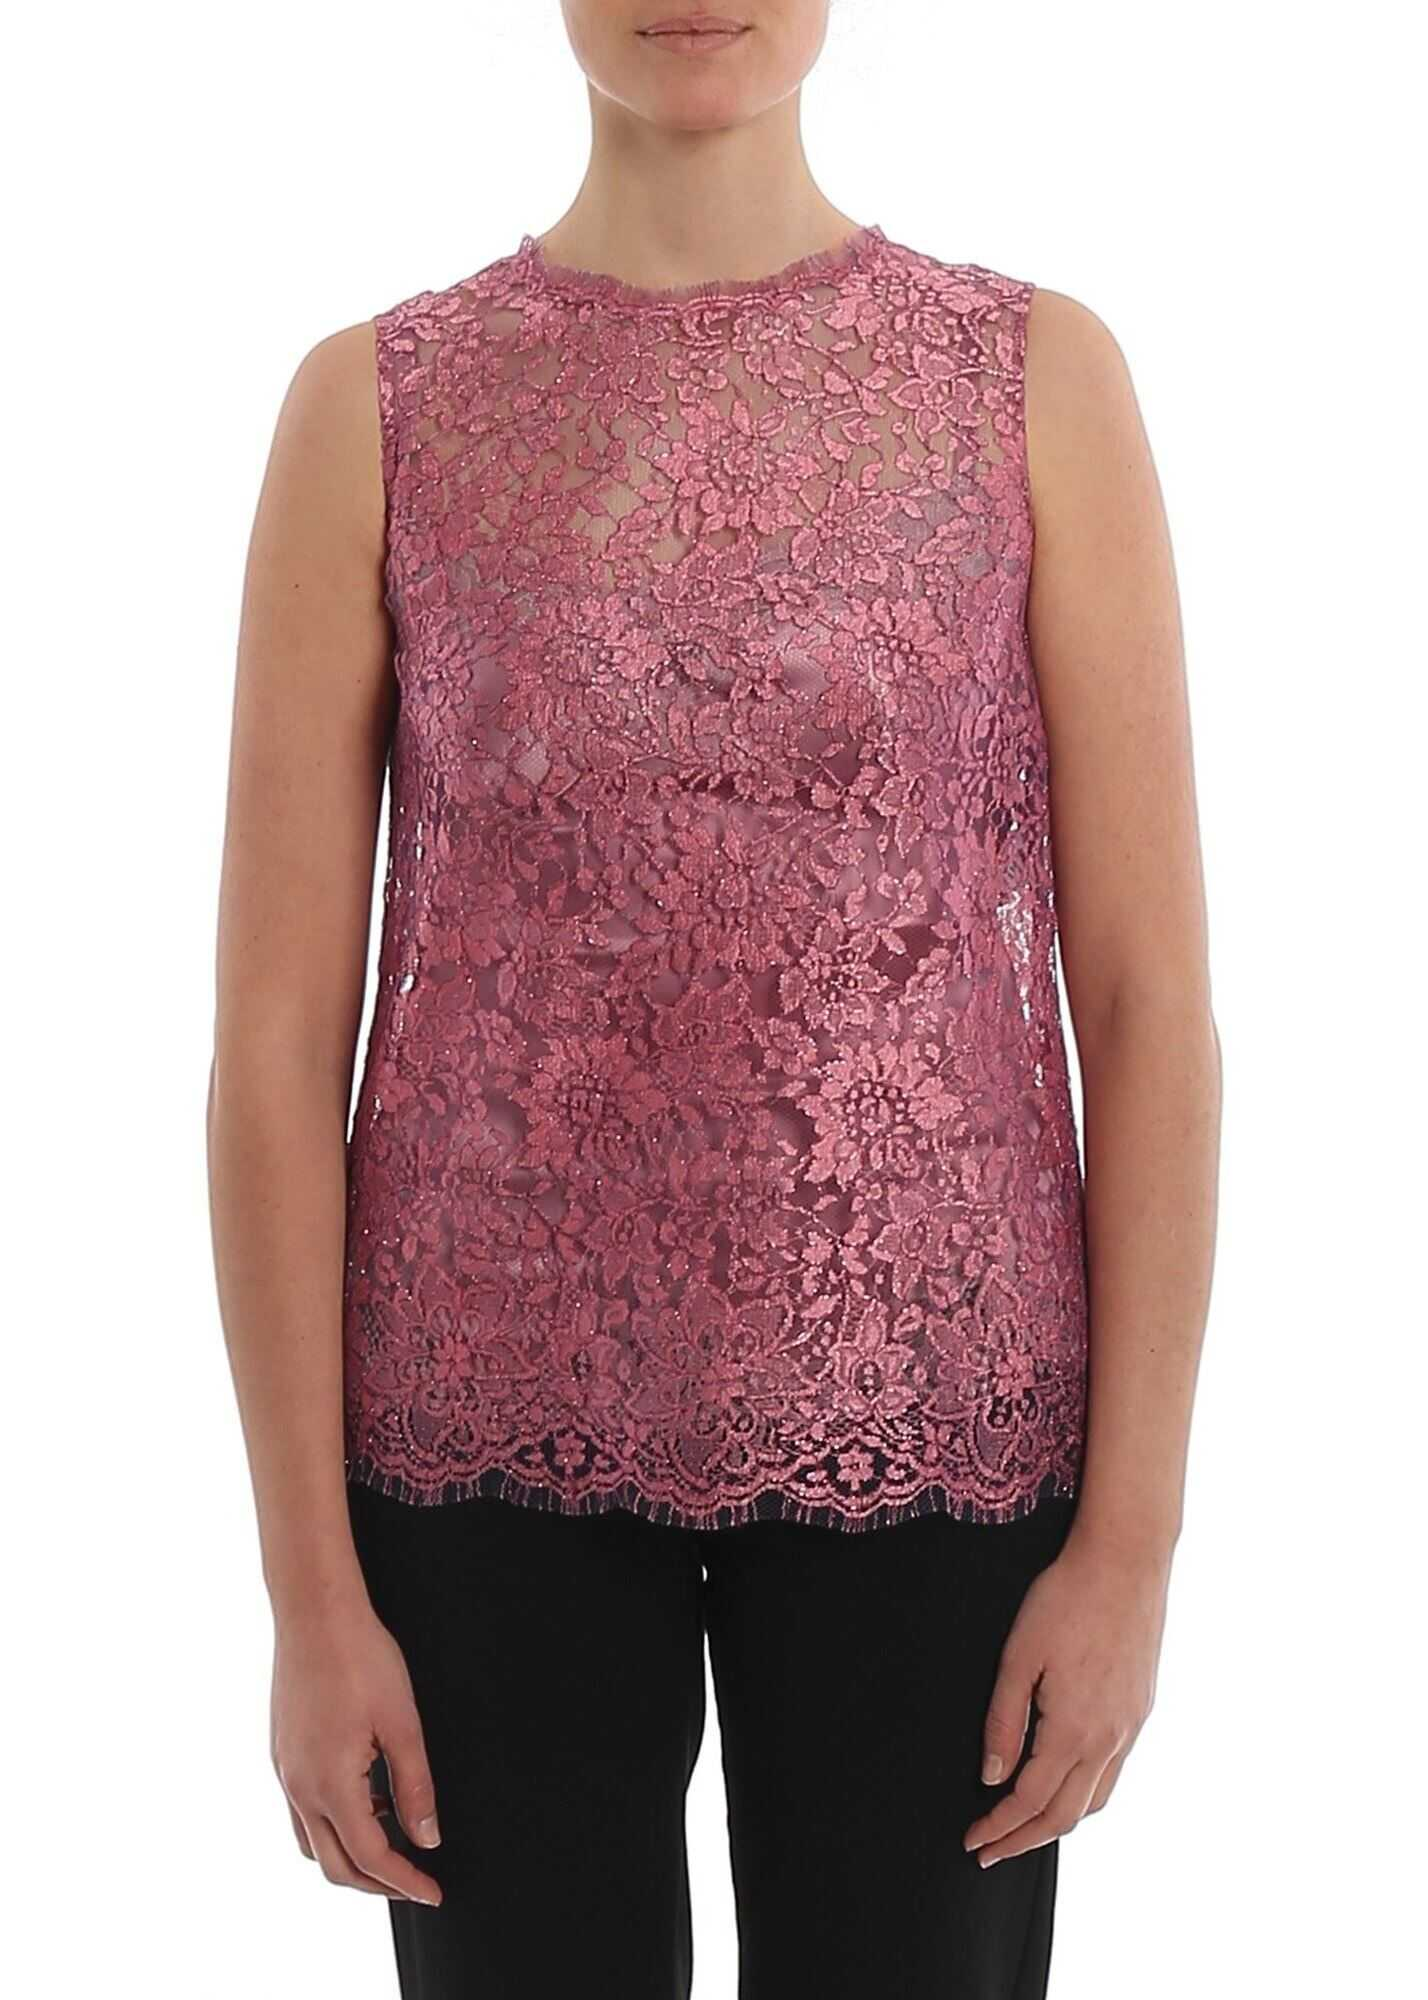 Dolce & Gabbana Lamé Chantilly Lace Top Pink